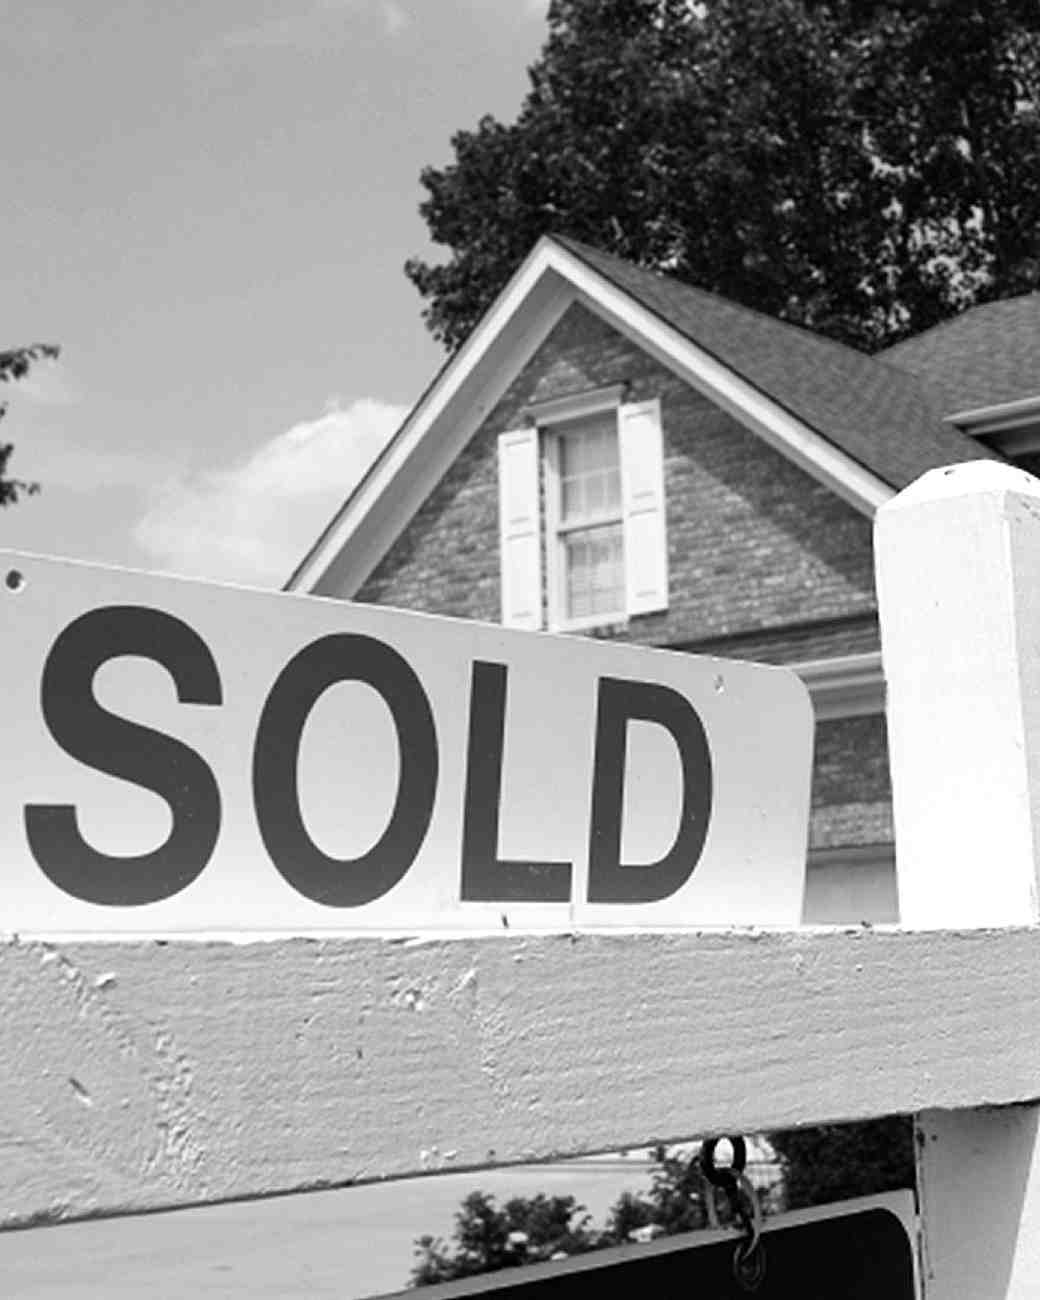 house-sold-sign-0216.jpg